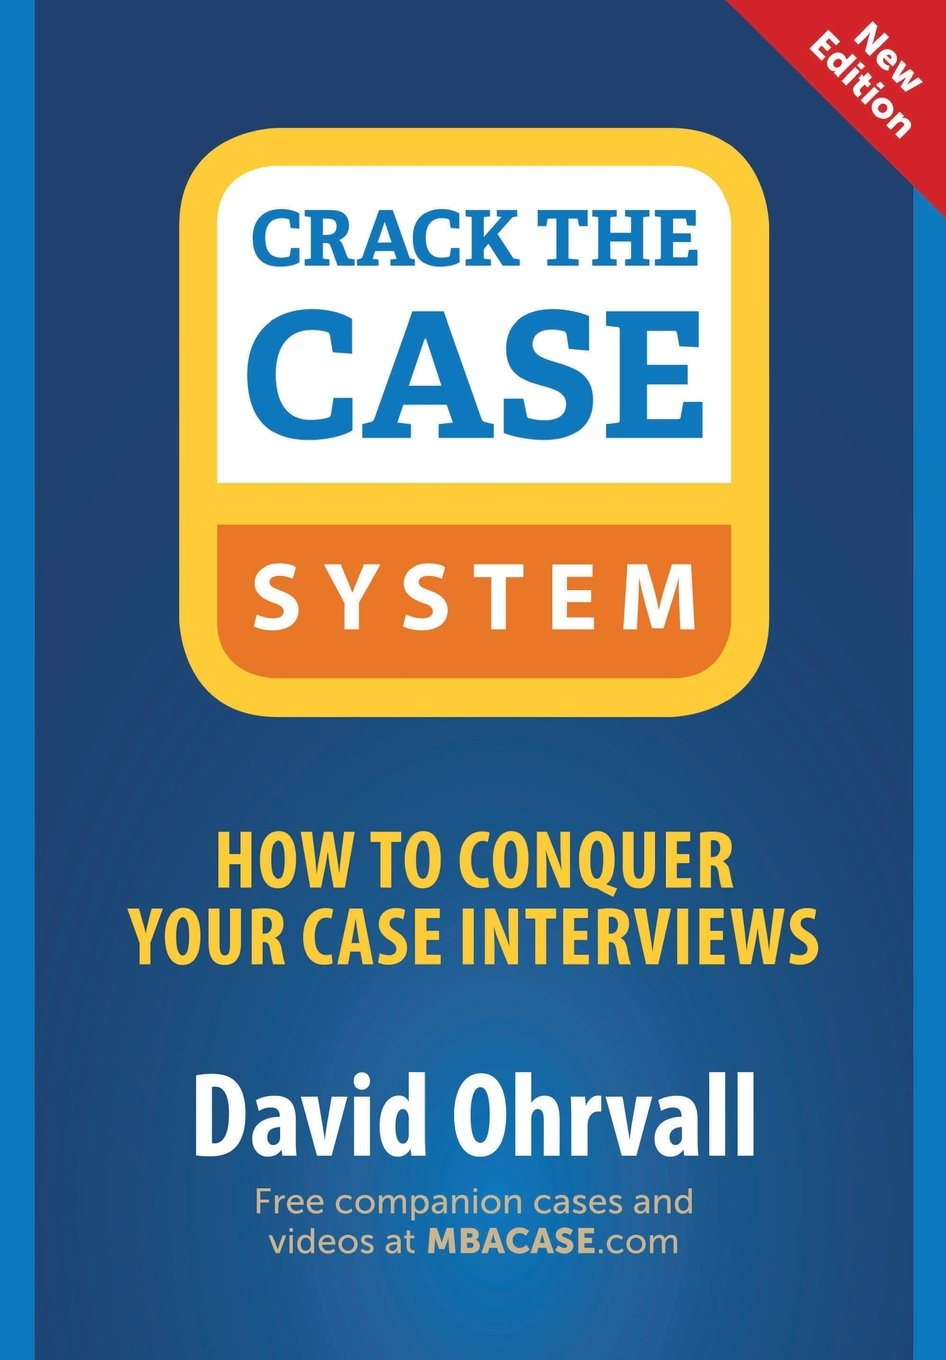 crack the case system how to conquer your case interviews david crack the case system how to conquer your case interviews david ohrvall 9780996779203 amazon com books